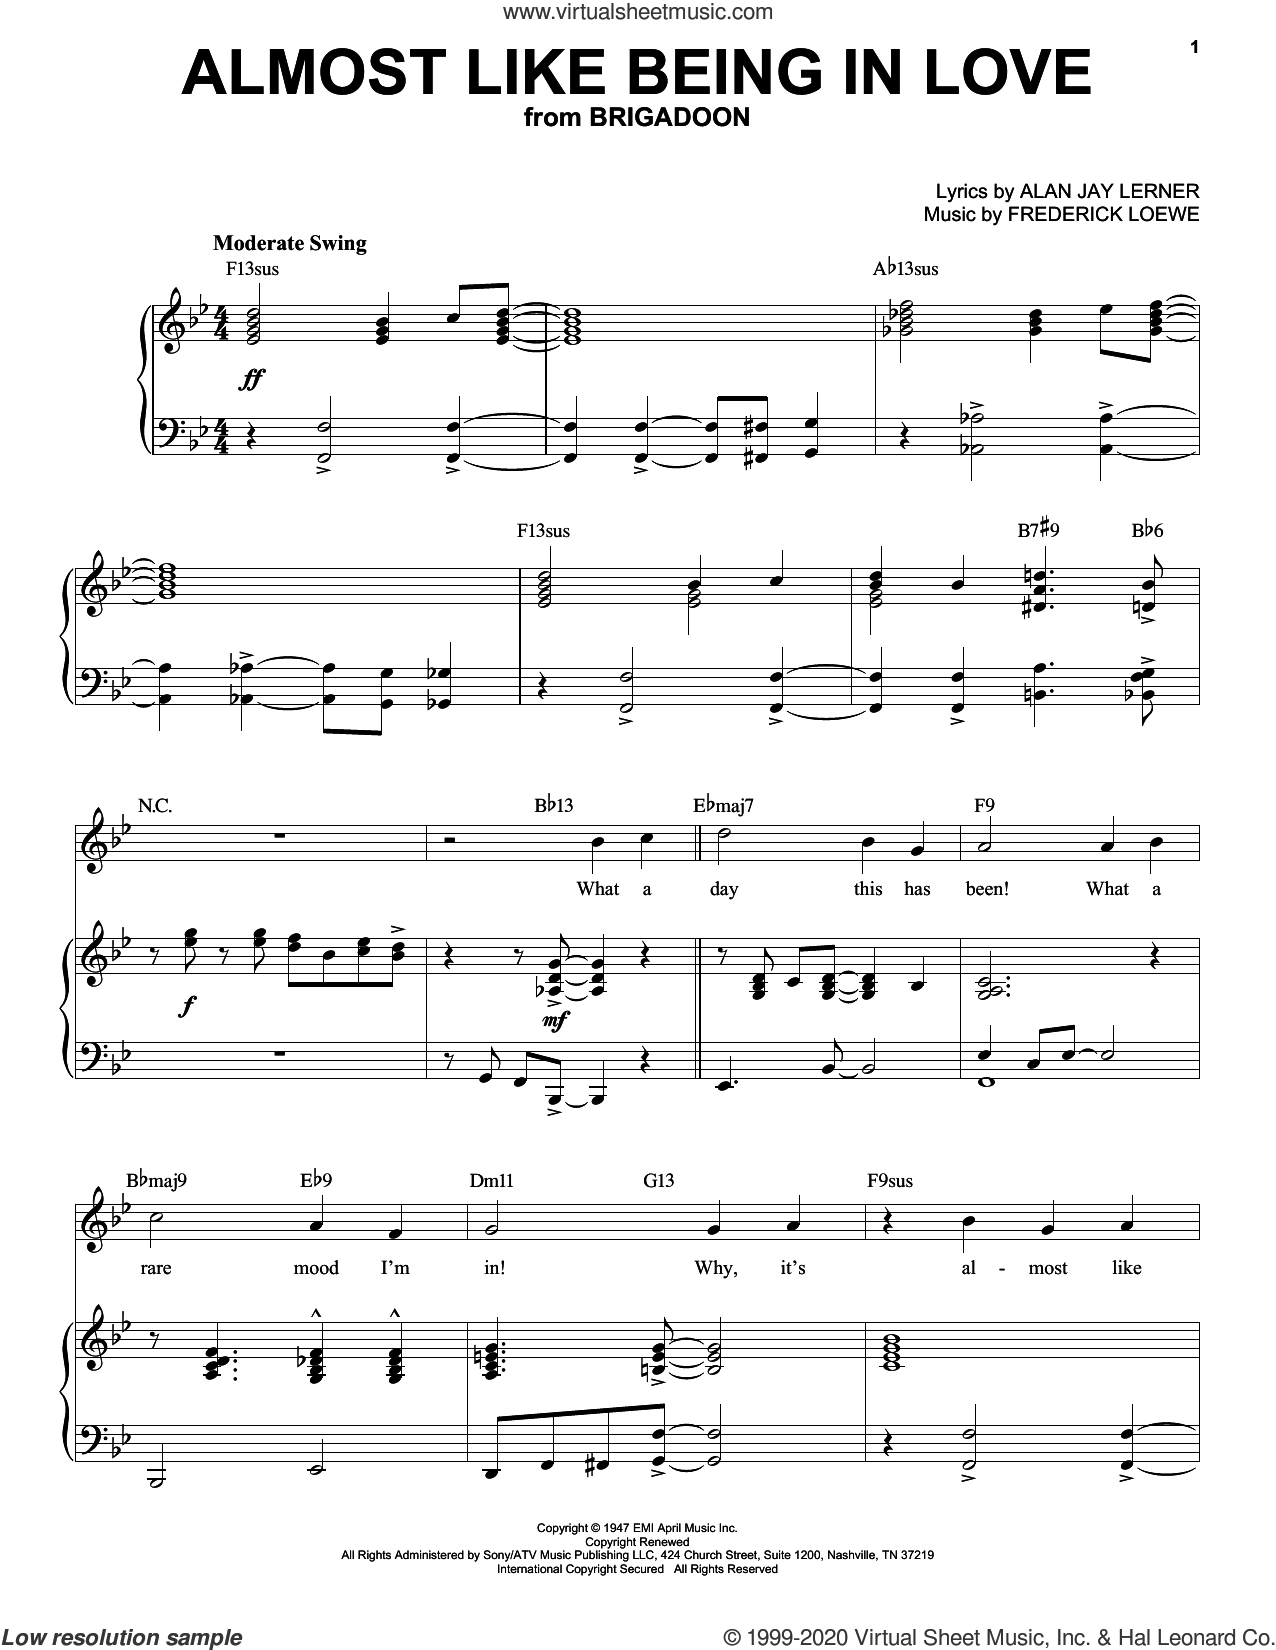 Almost Like Being In Love [Jazz version] (arr. Brent Edstrom) sheet music for voice and piano (High Voice) by Alan Jay Lerner, Brent Edstrom, Frederick Loewe and Lerner & Loewe, intermediate skill level